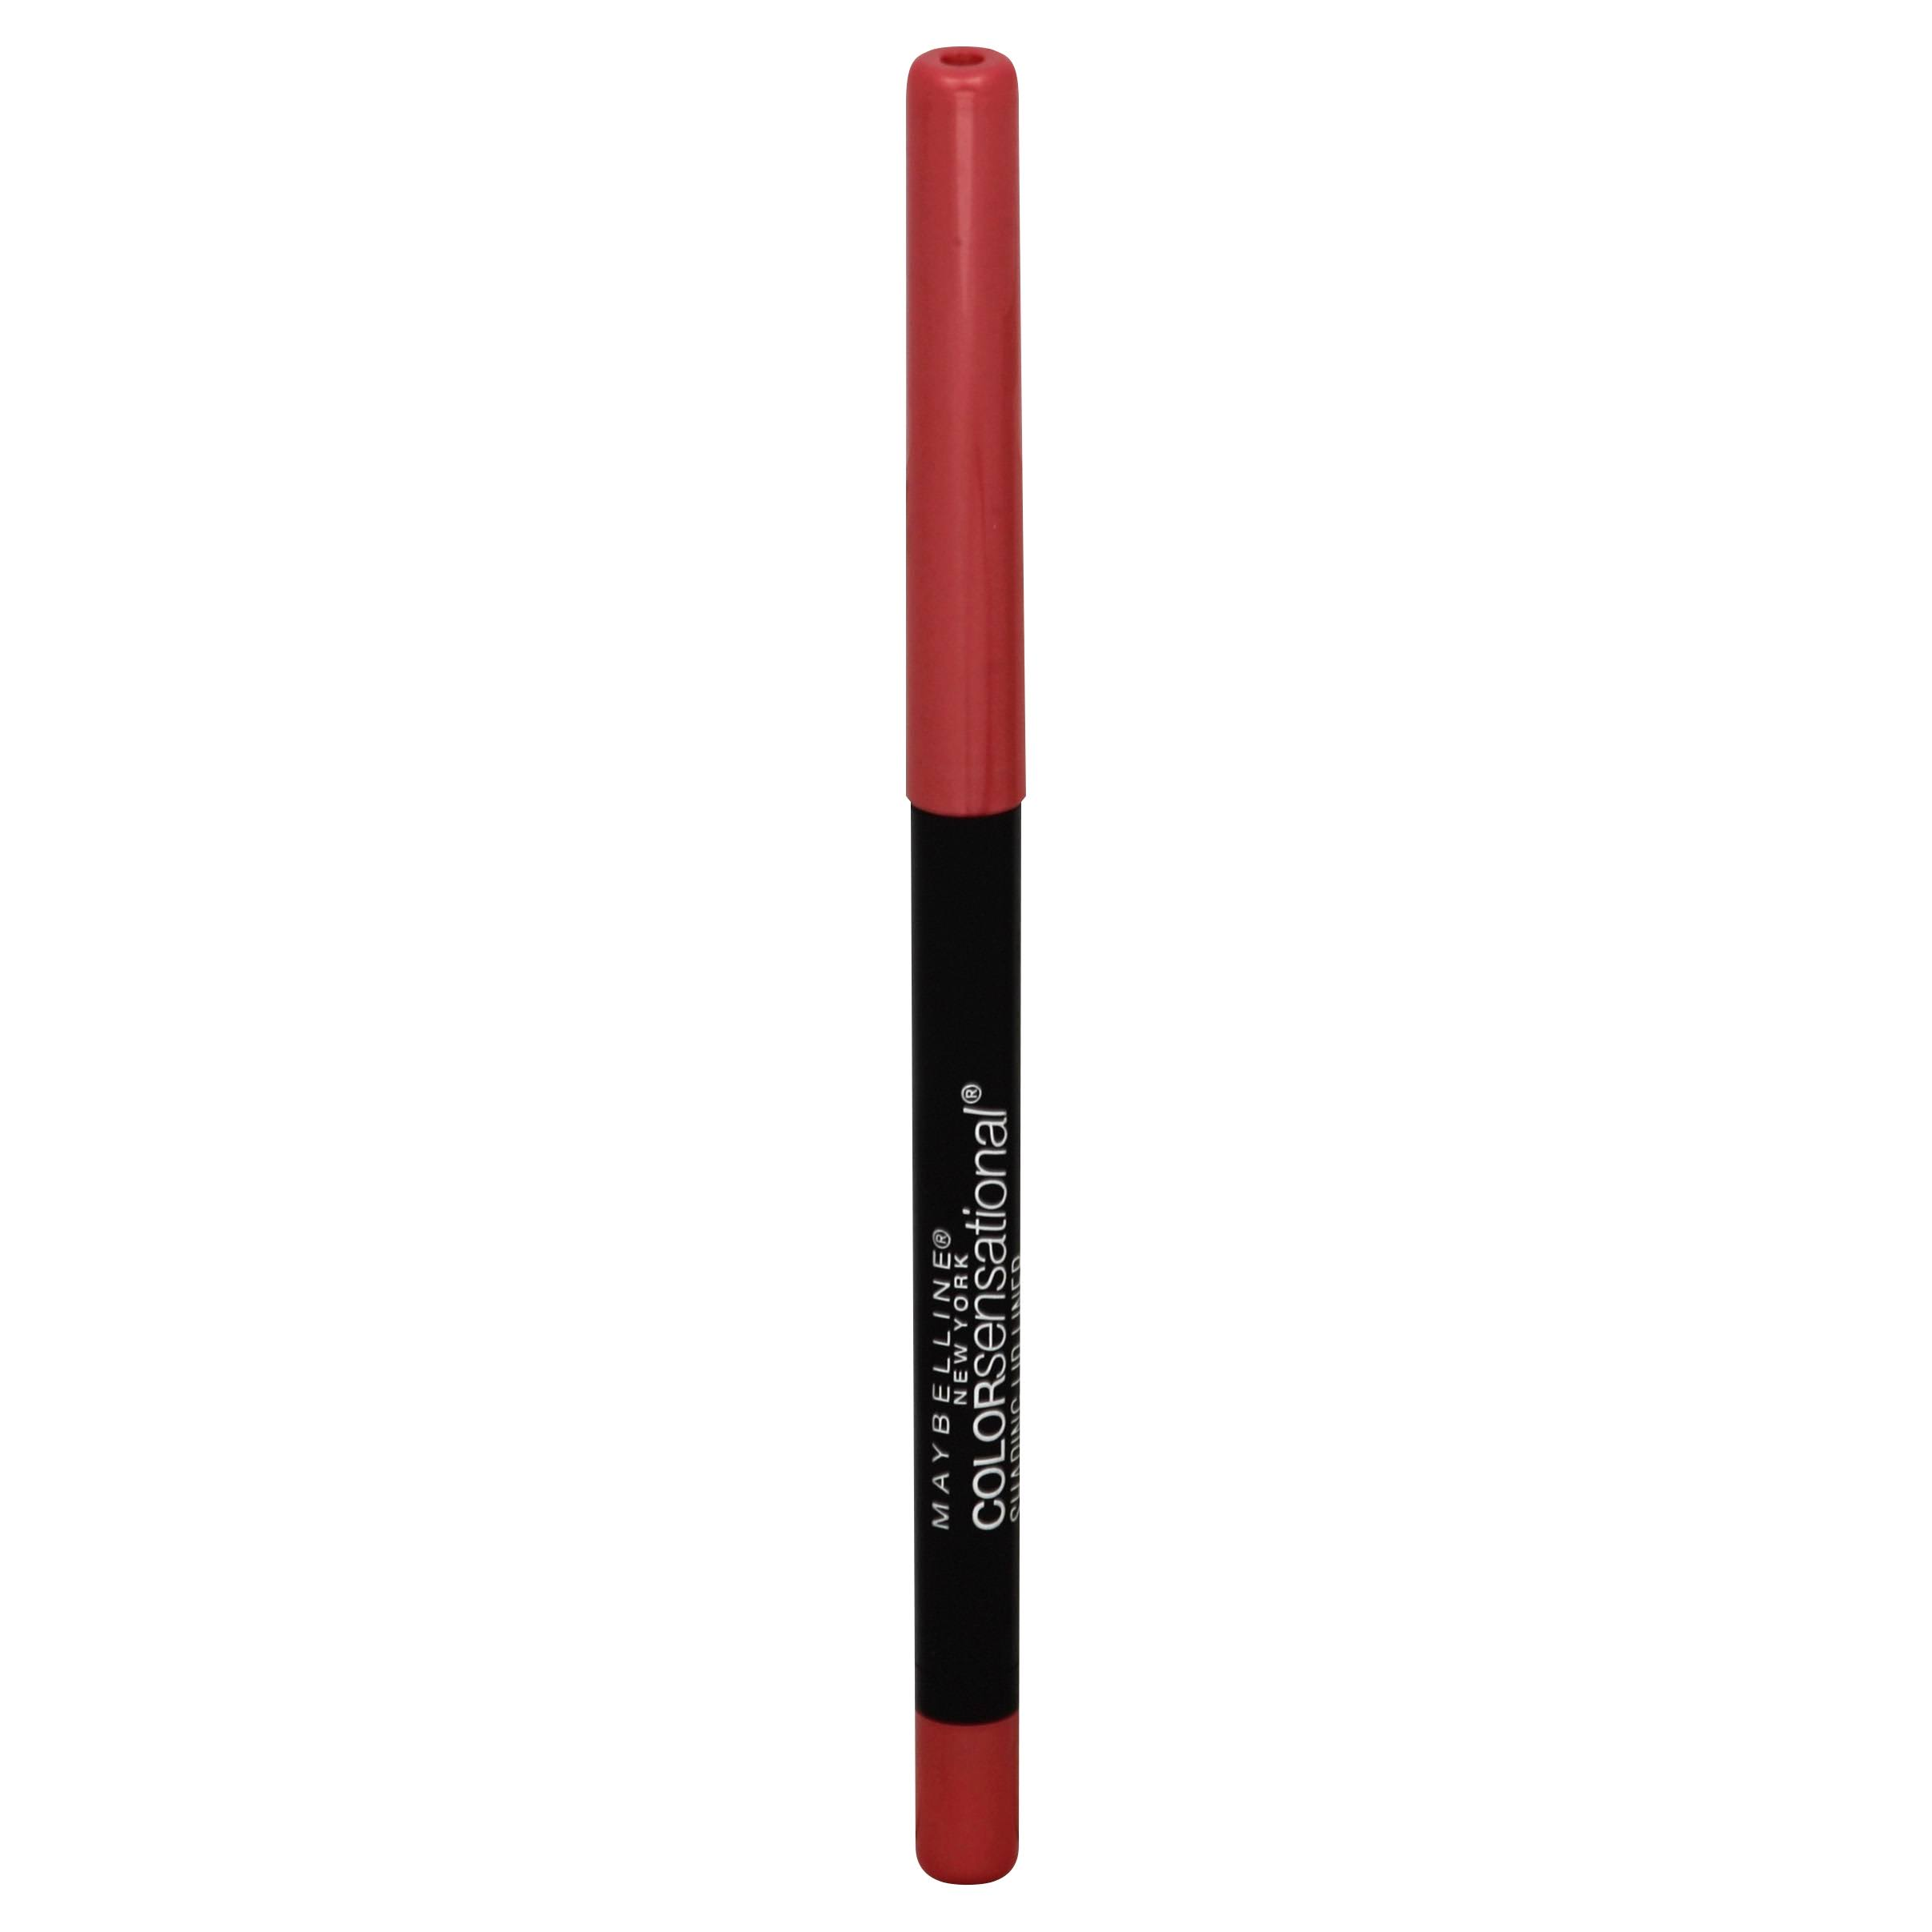 Maybelline Color Sensational Shaping Lip Liner - Pink Wink, 0.01oz